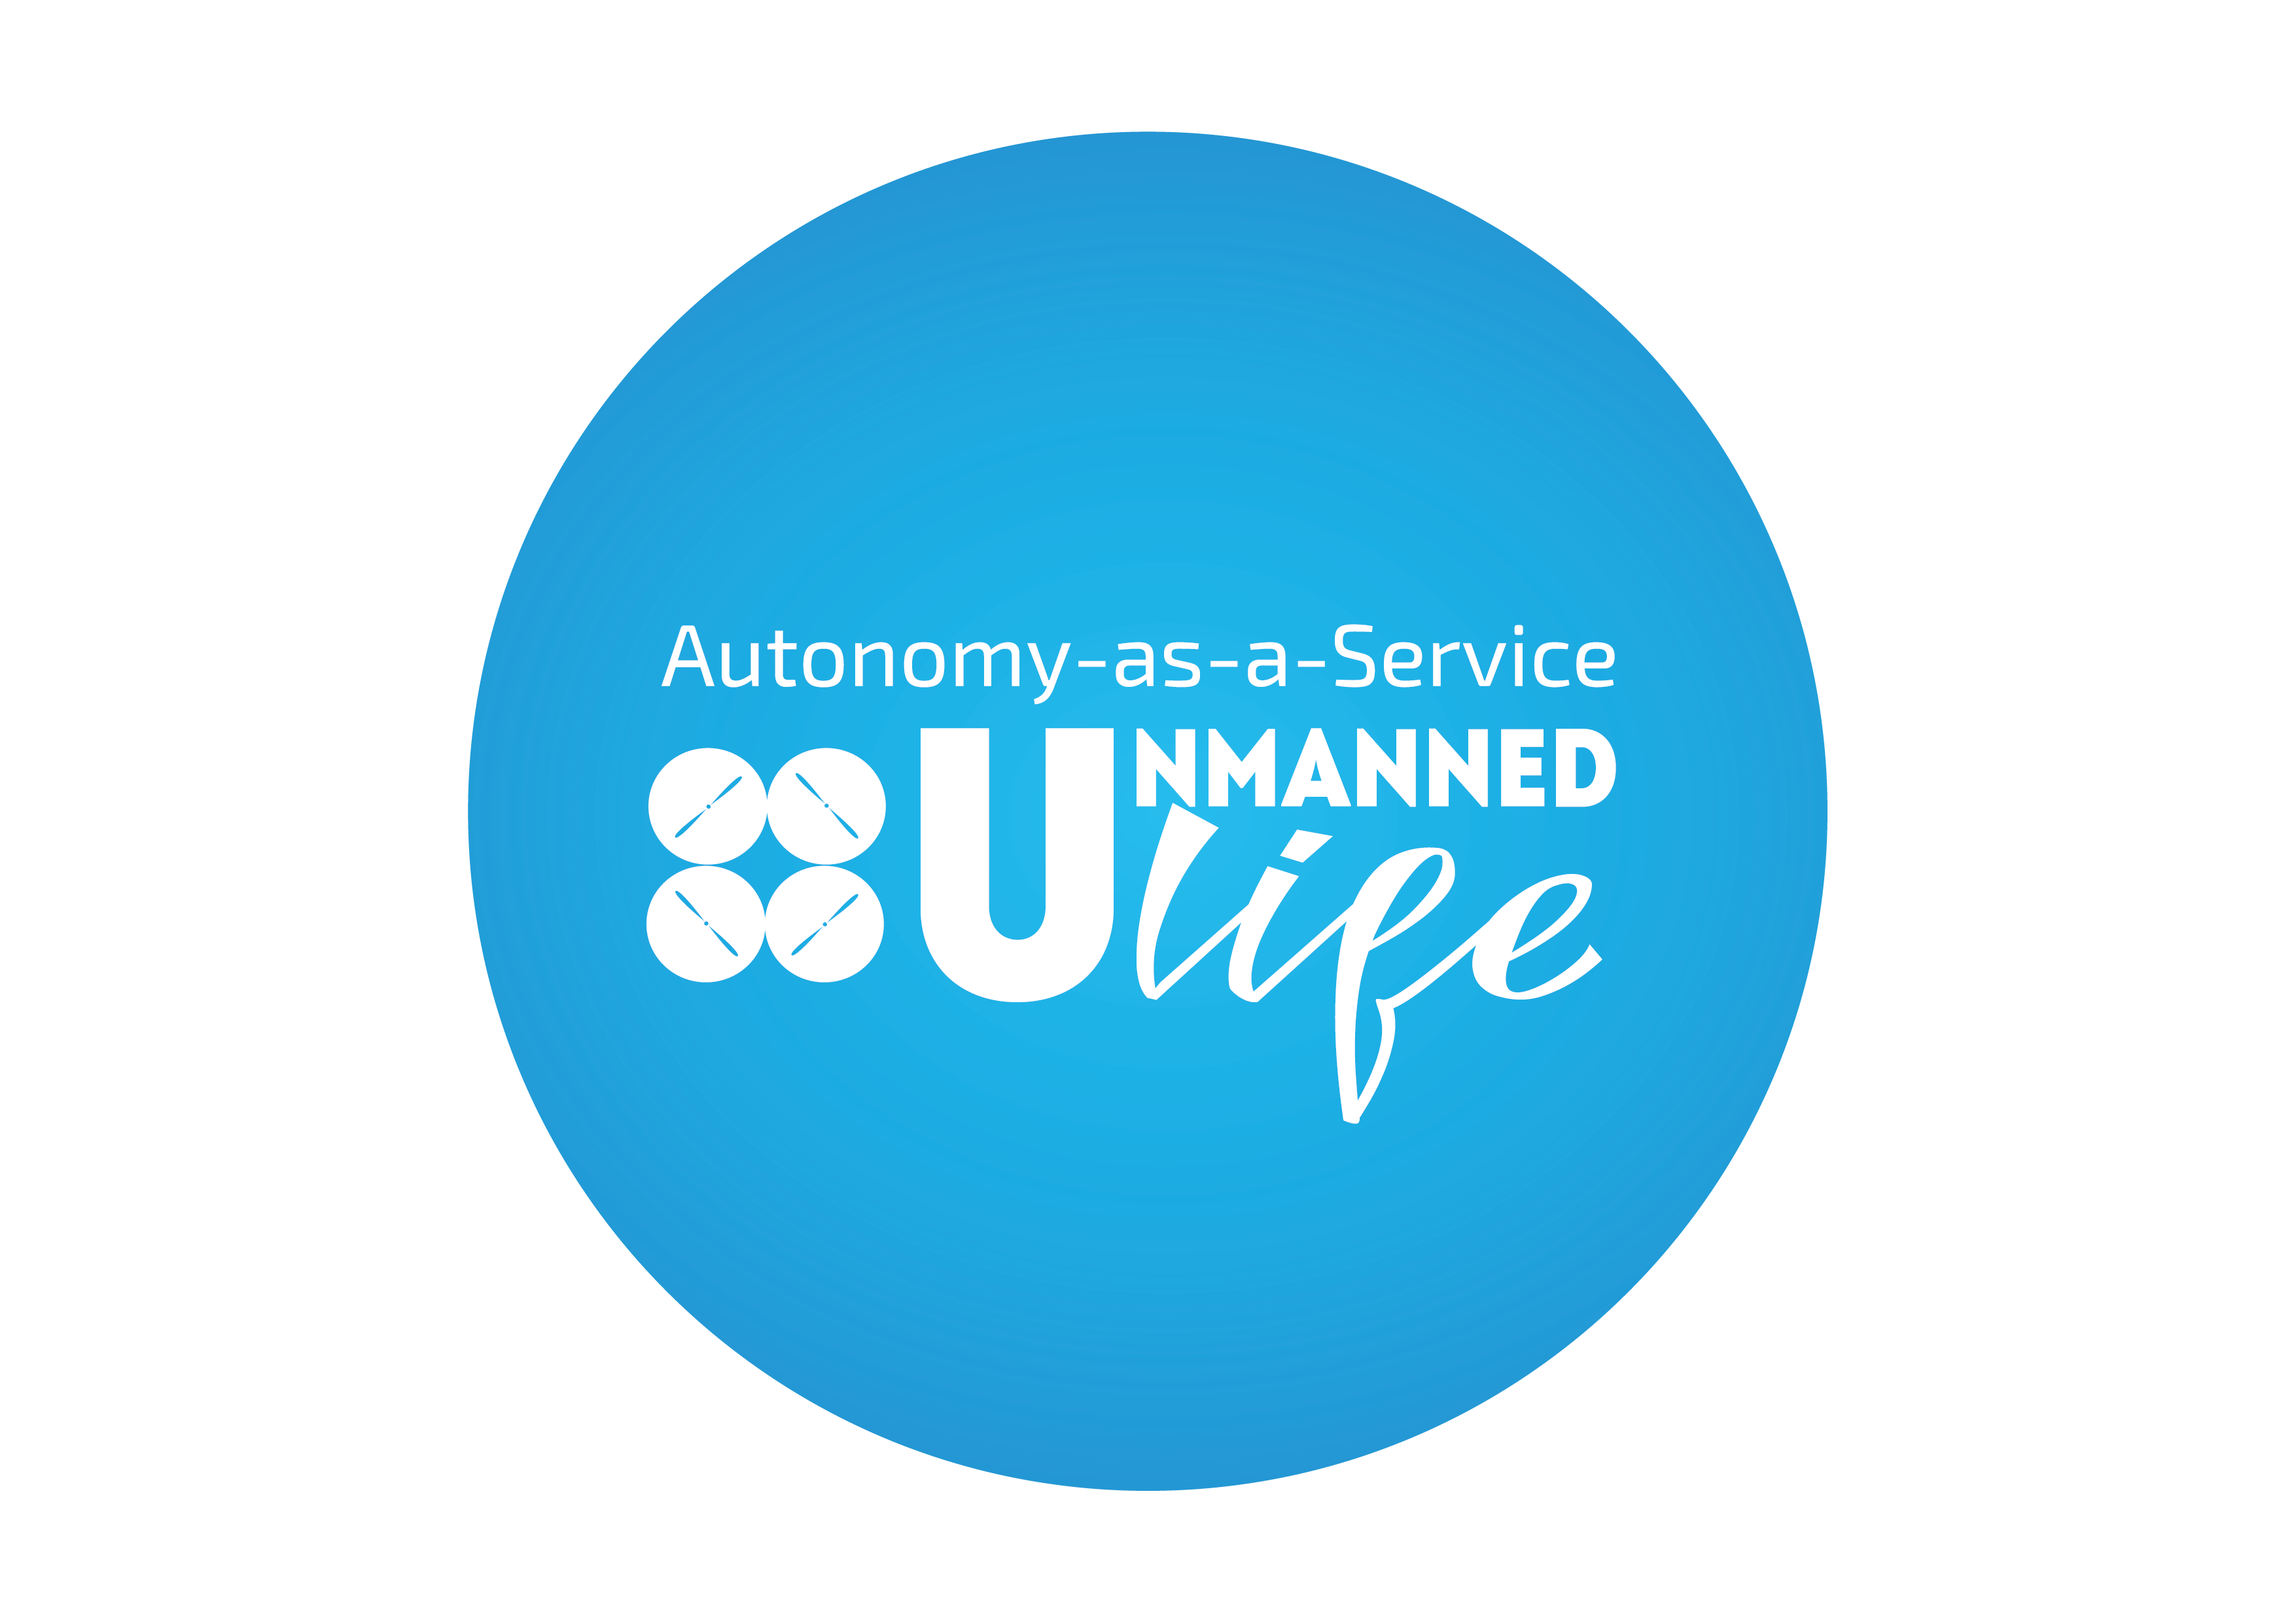 Unmanned life